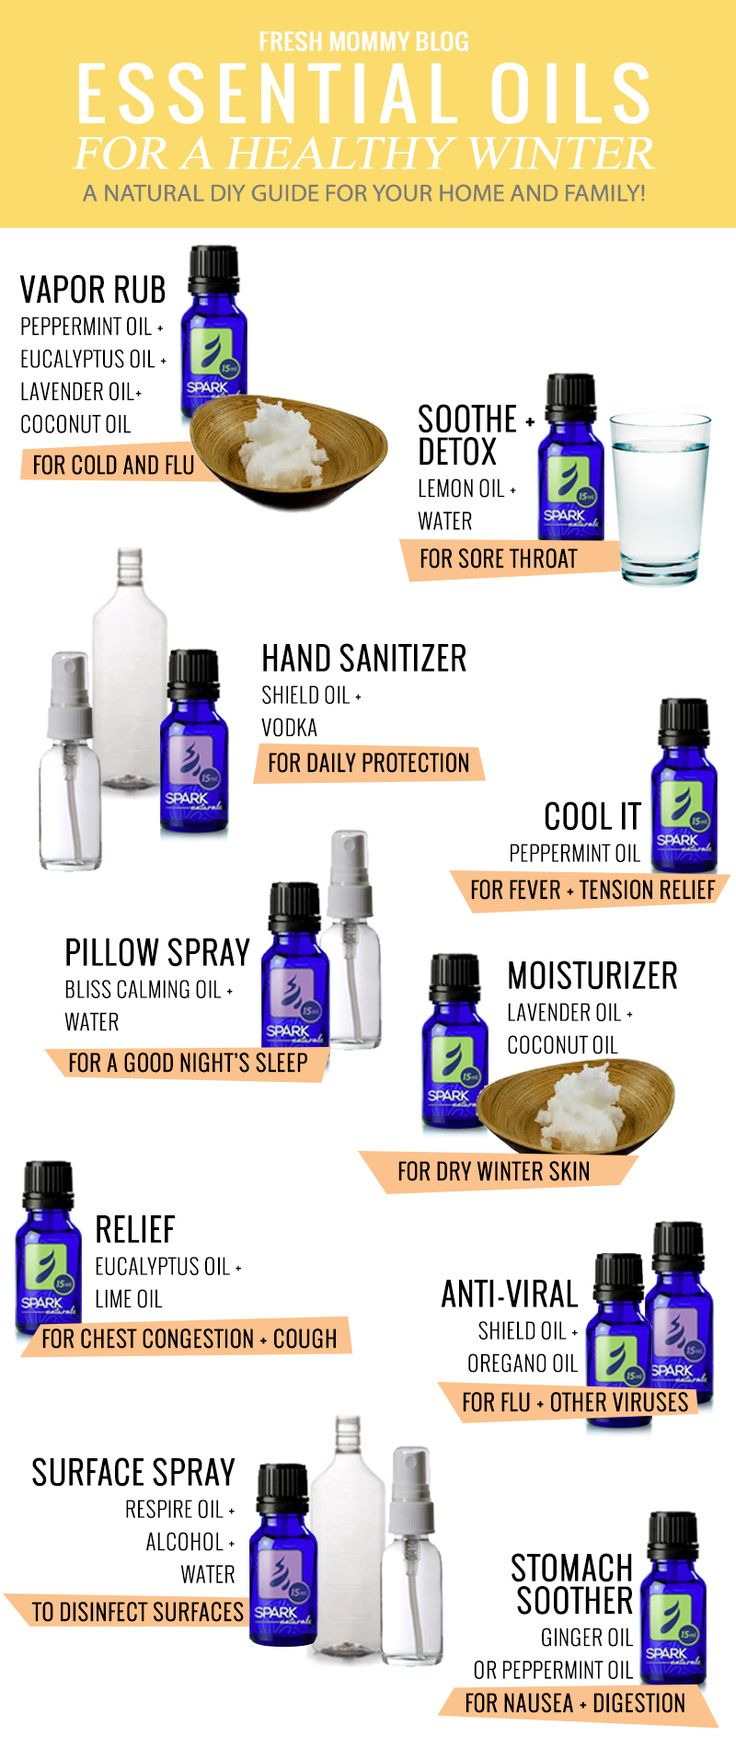 Top Essential Oils + Recipes for a Healthy Winter - A natural medicine cabinet DIY guide to take care of your home and family through cold and flu season. All natural vapor rub, hand sanitizer and tons more!  Fresh Mommy Blog | Spark Naturals - Use code FRESHMOMMY for 10% off any order from Sparknaturals.com